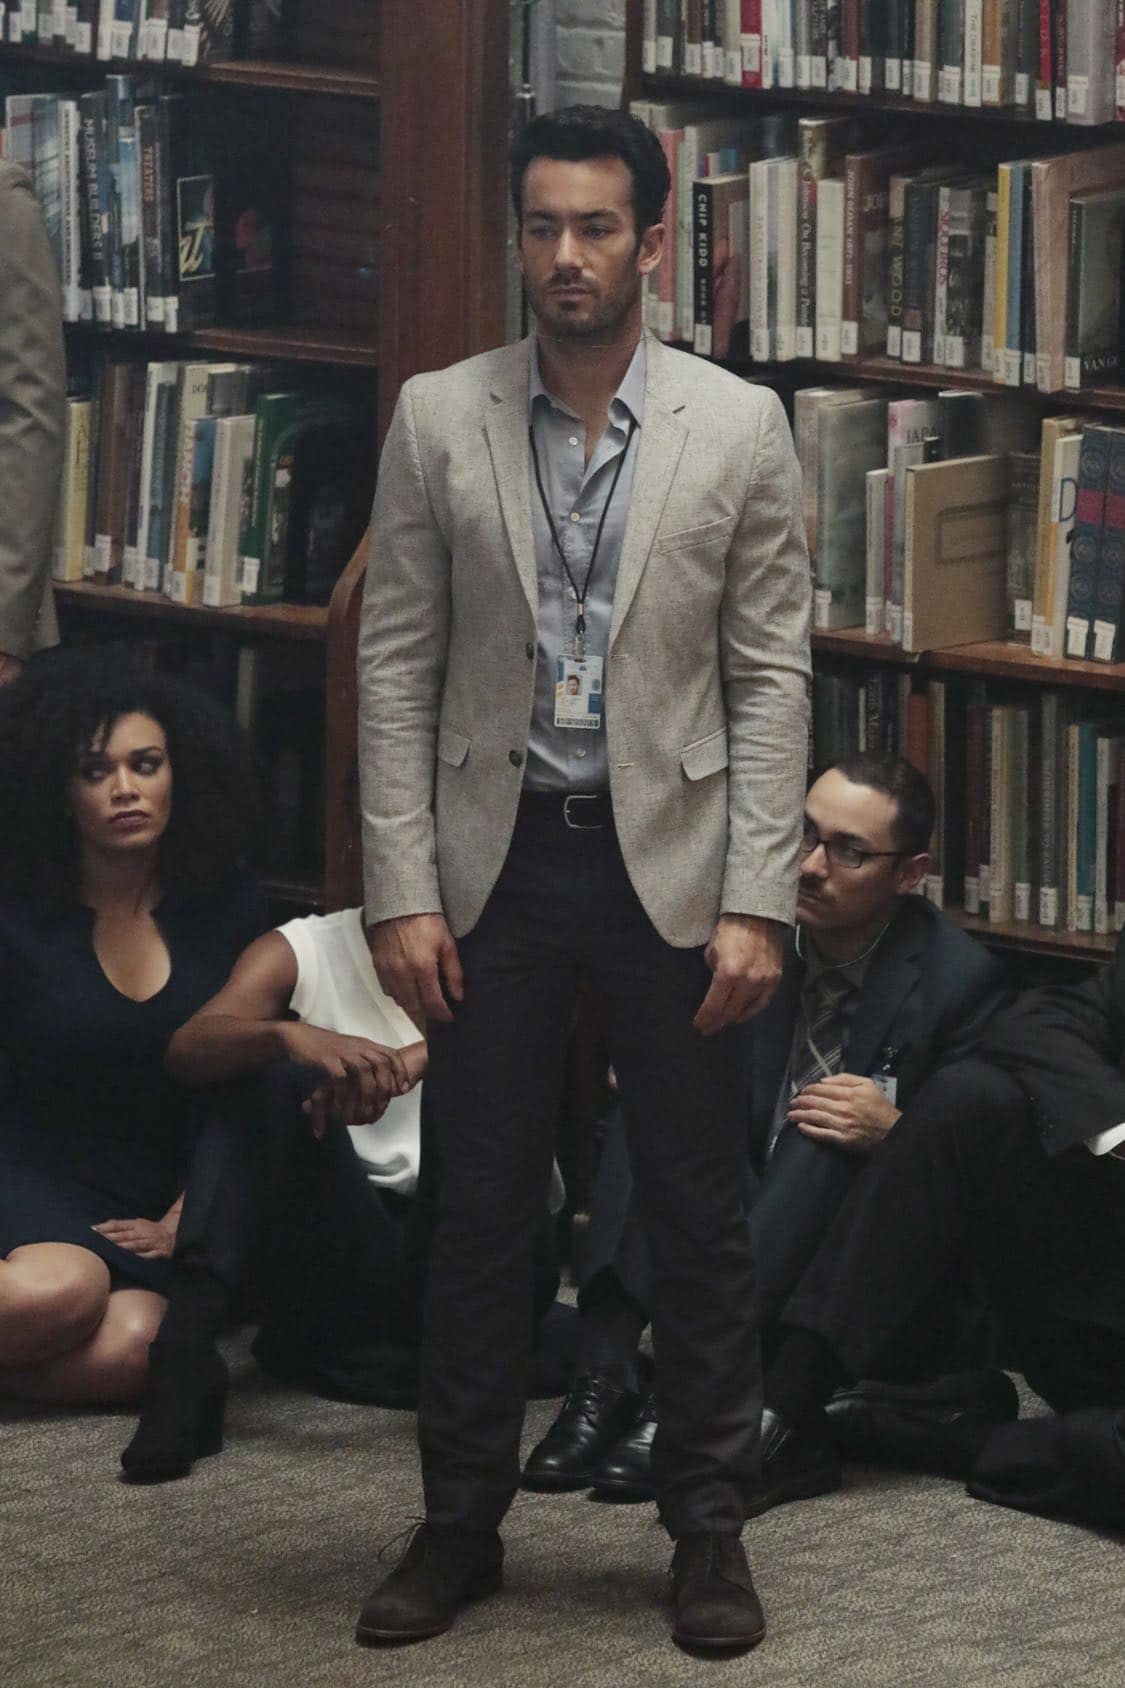 """QUANTICO - """"Stescalade"""" - The new CIA recruits continue training at The Farm focusing on assessment, while in the future, Alex goes undercover to infiltrate the terrorist group holding everyone hostage where she is shocked to discover not everyone is a stranger on """"Quantico,"""" airing SUNDAY, OCTOBER 16 (10:00-11:00 p.m. EDT), on the ABC Television Network. (ABC/Giovanni Rufino) AARON DIAZ"""